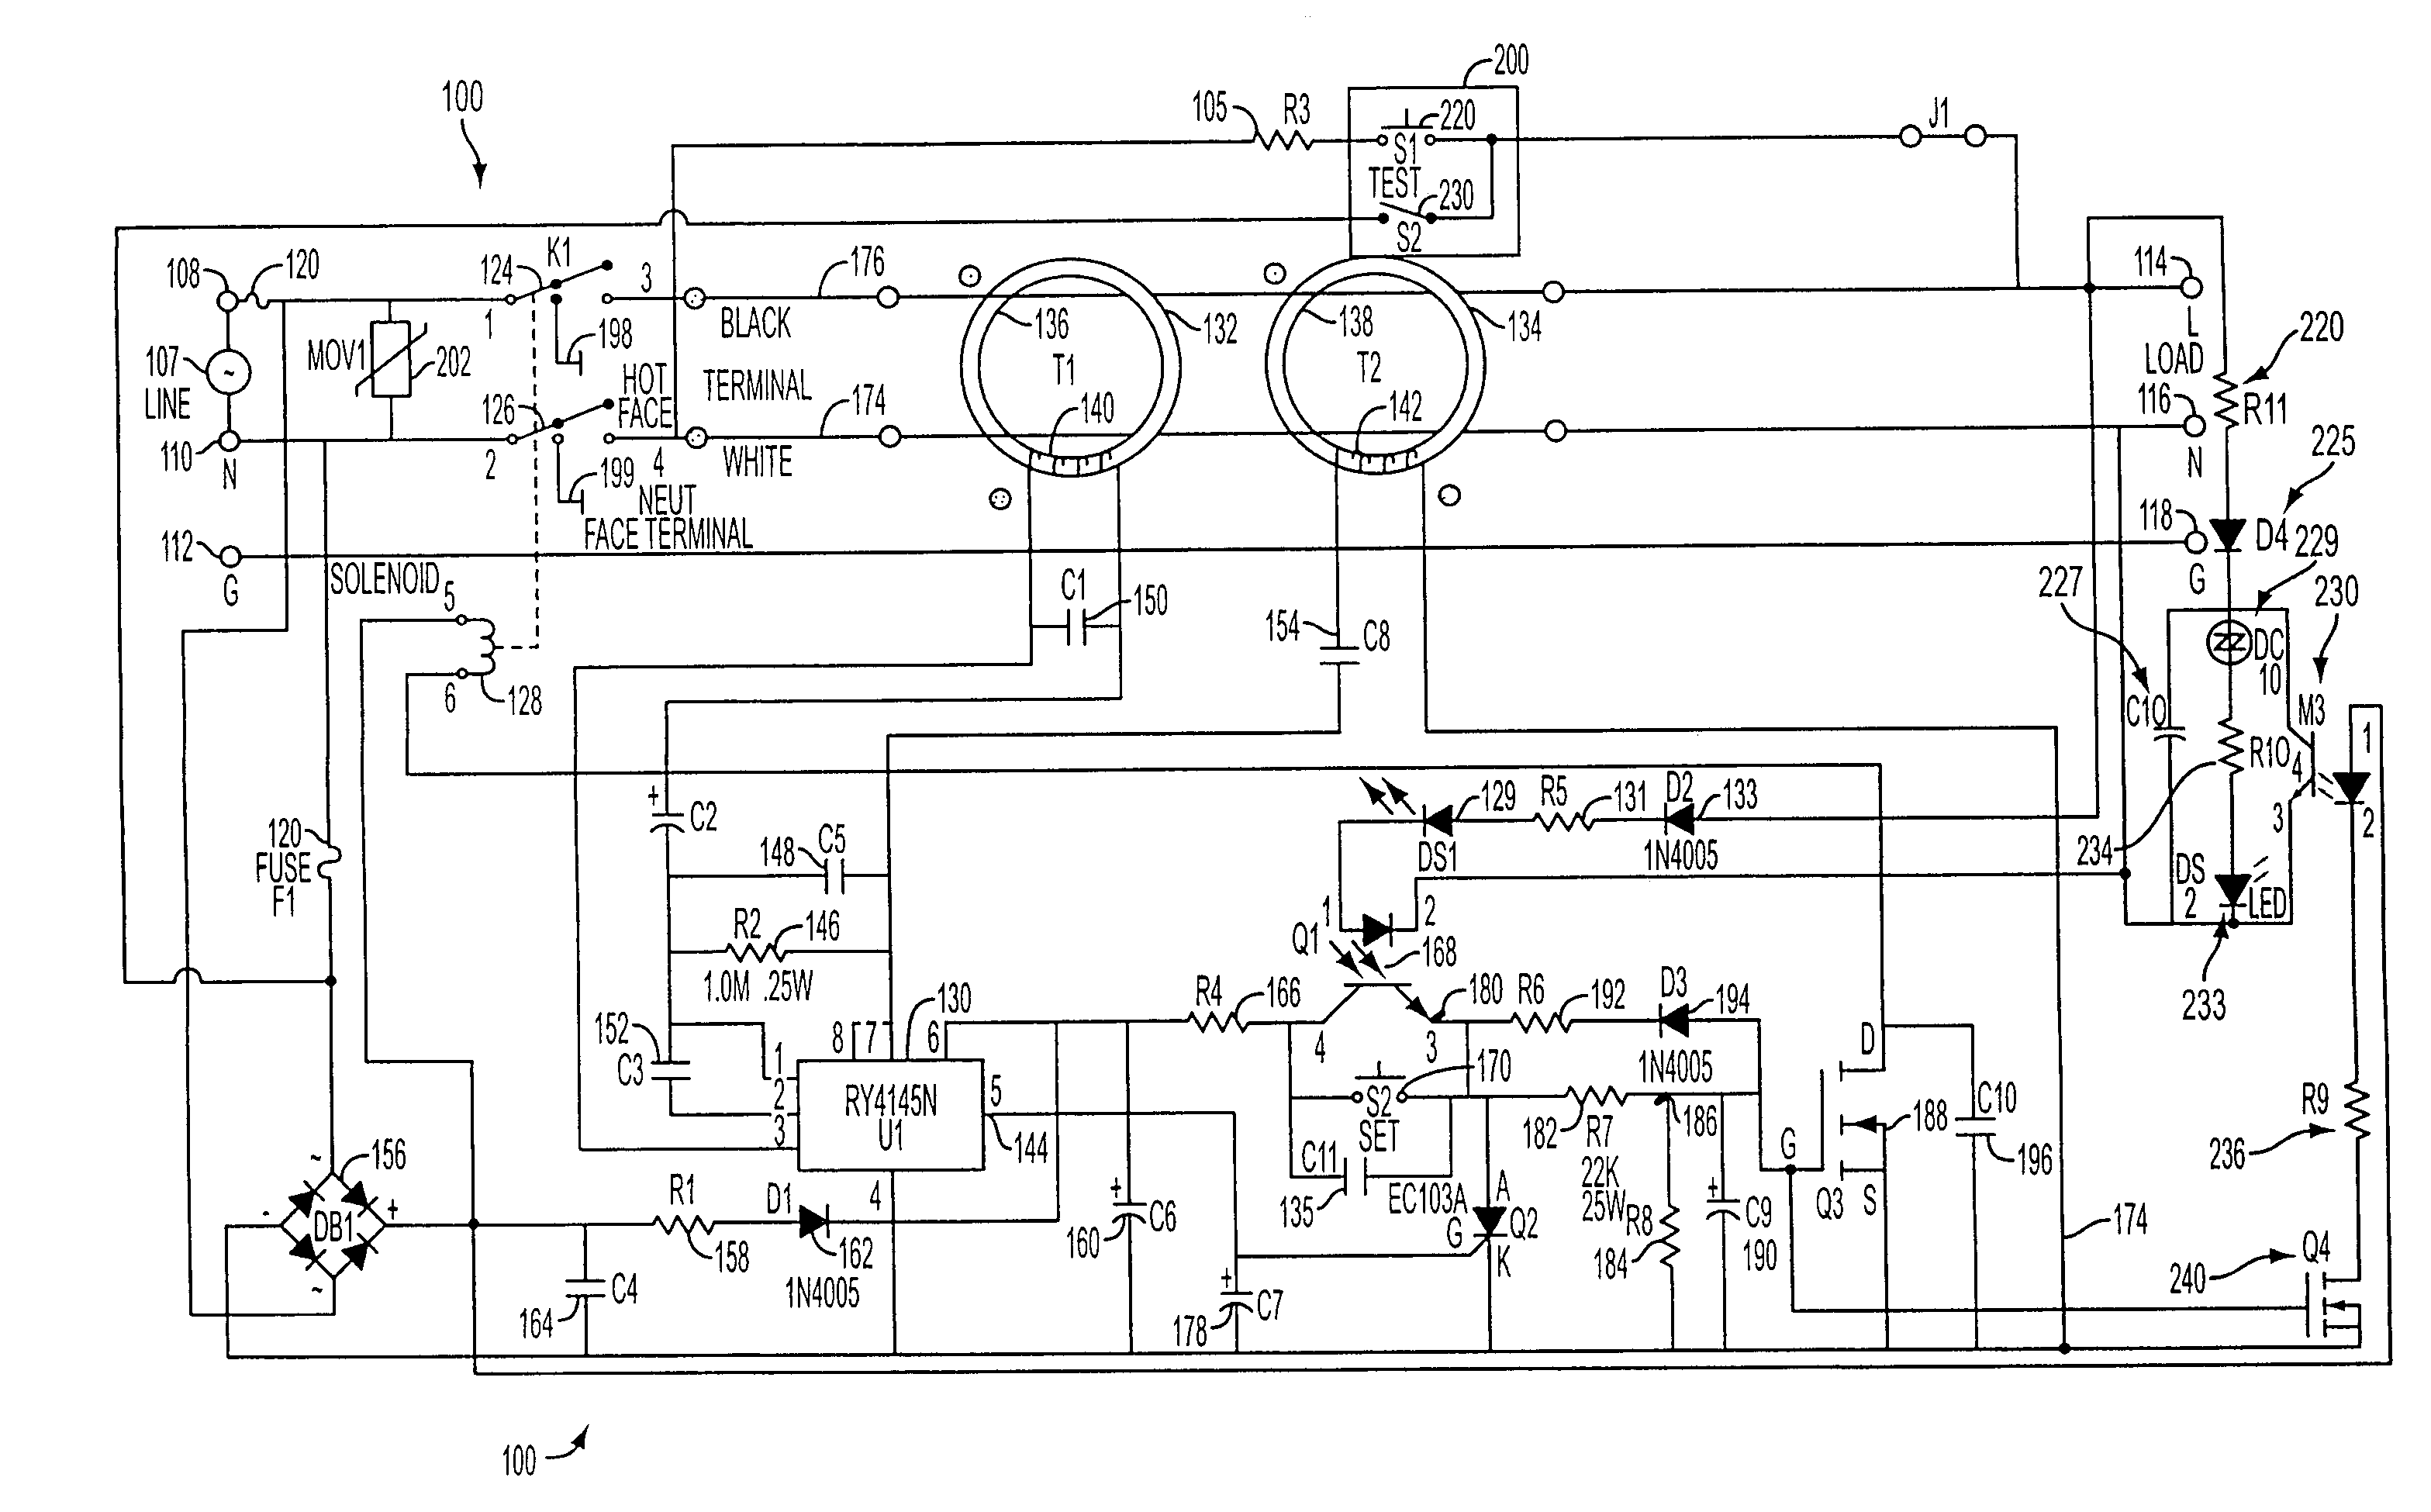 US07336457 20080226 D00000?resize=665%2C414 ground fault wiring diagram wiring diagram,Ground Fault Wiring